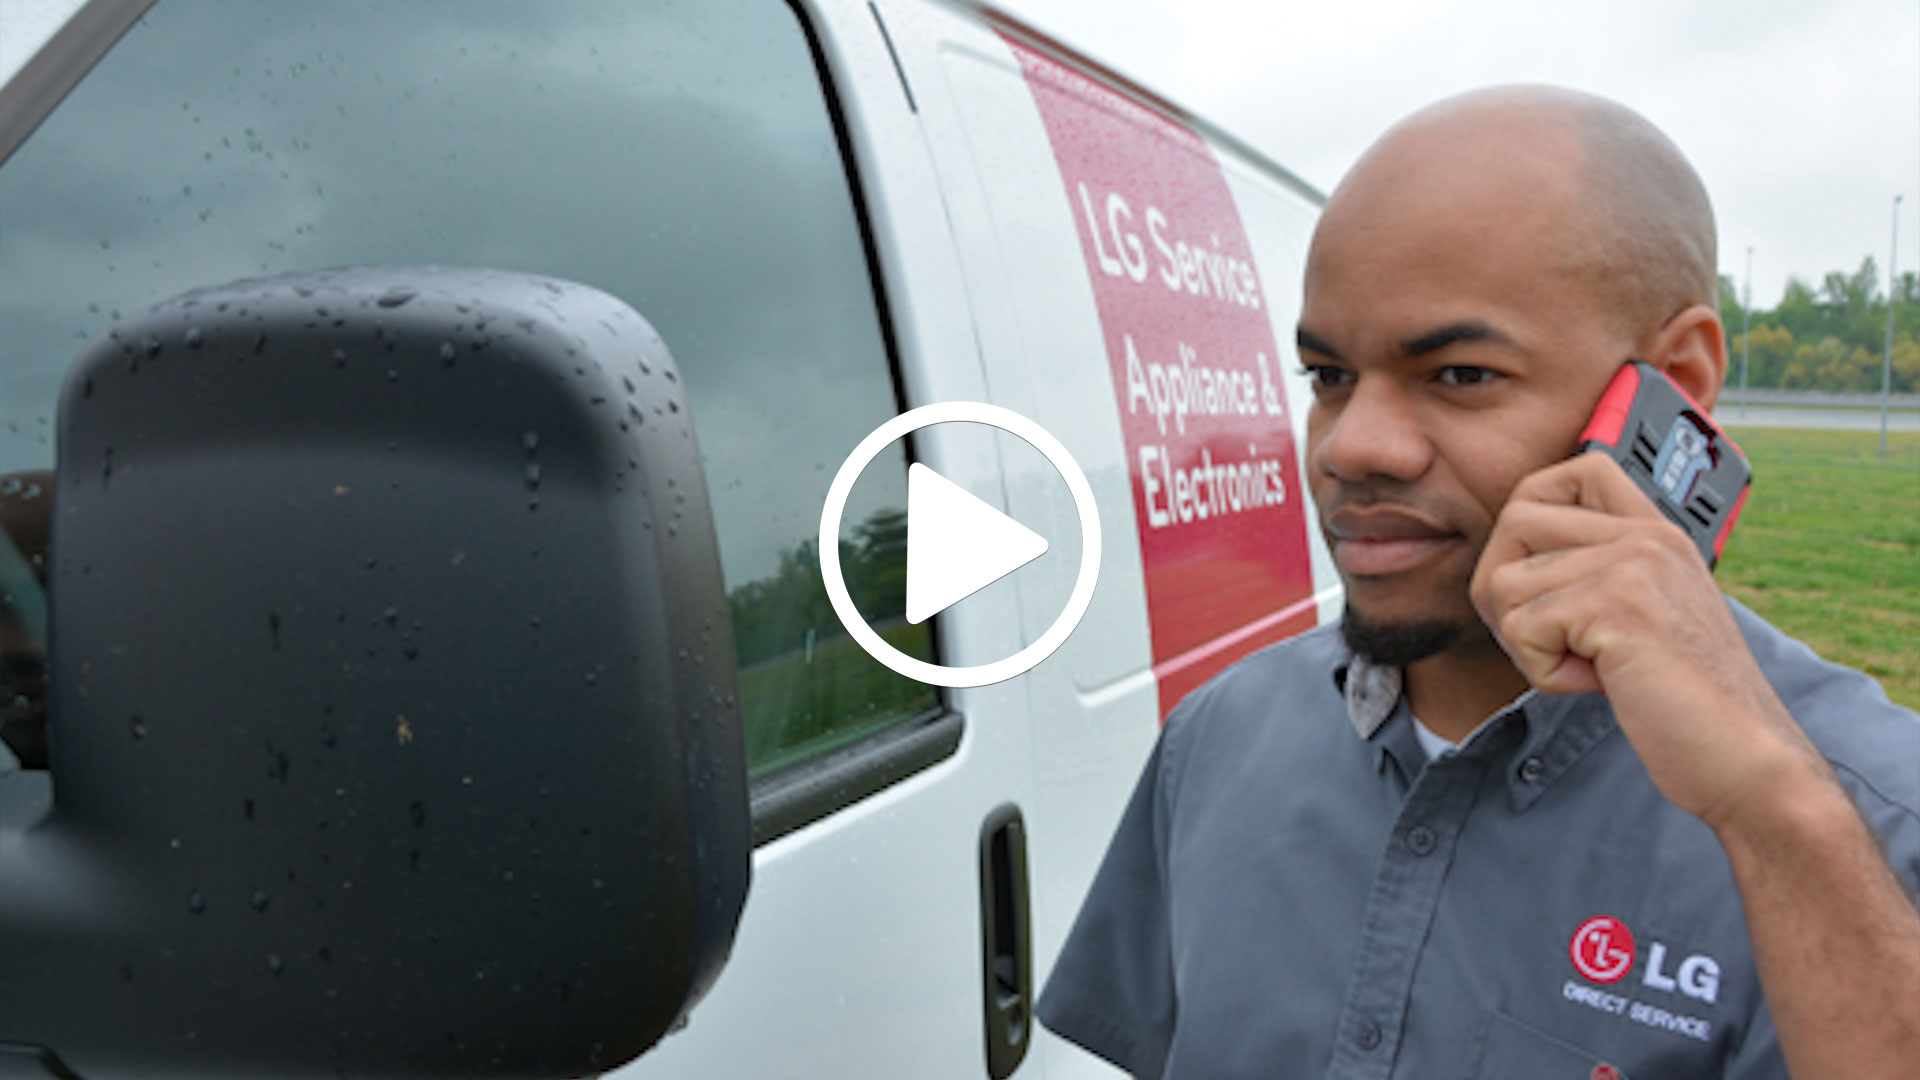 Watch our careers video for available job opening Field Service Technician in Modesto, CA